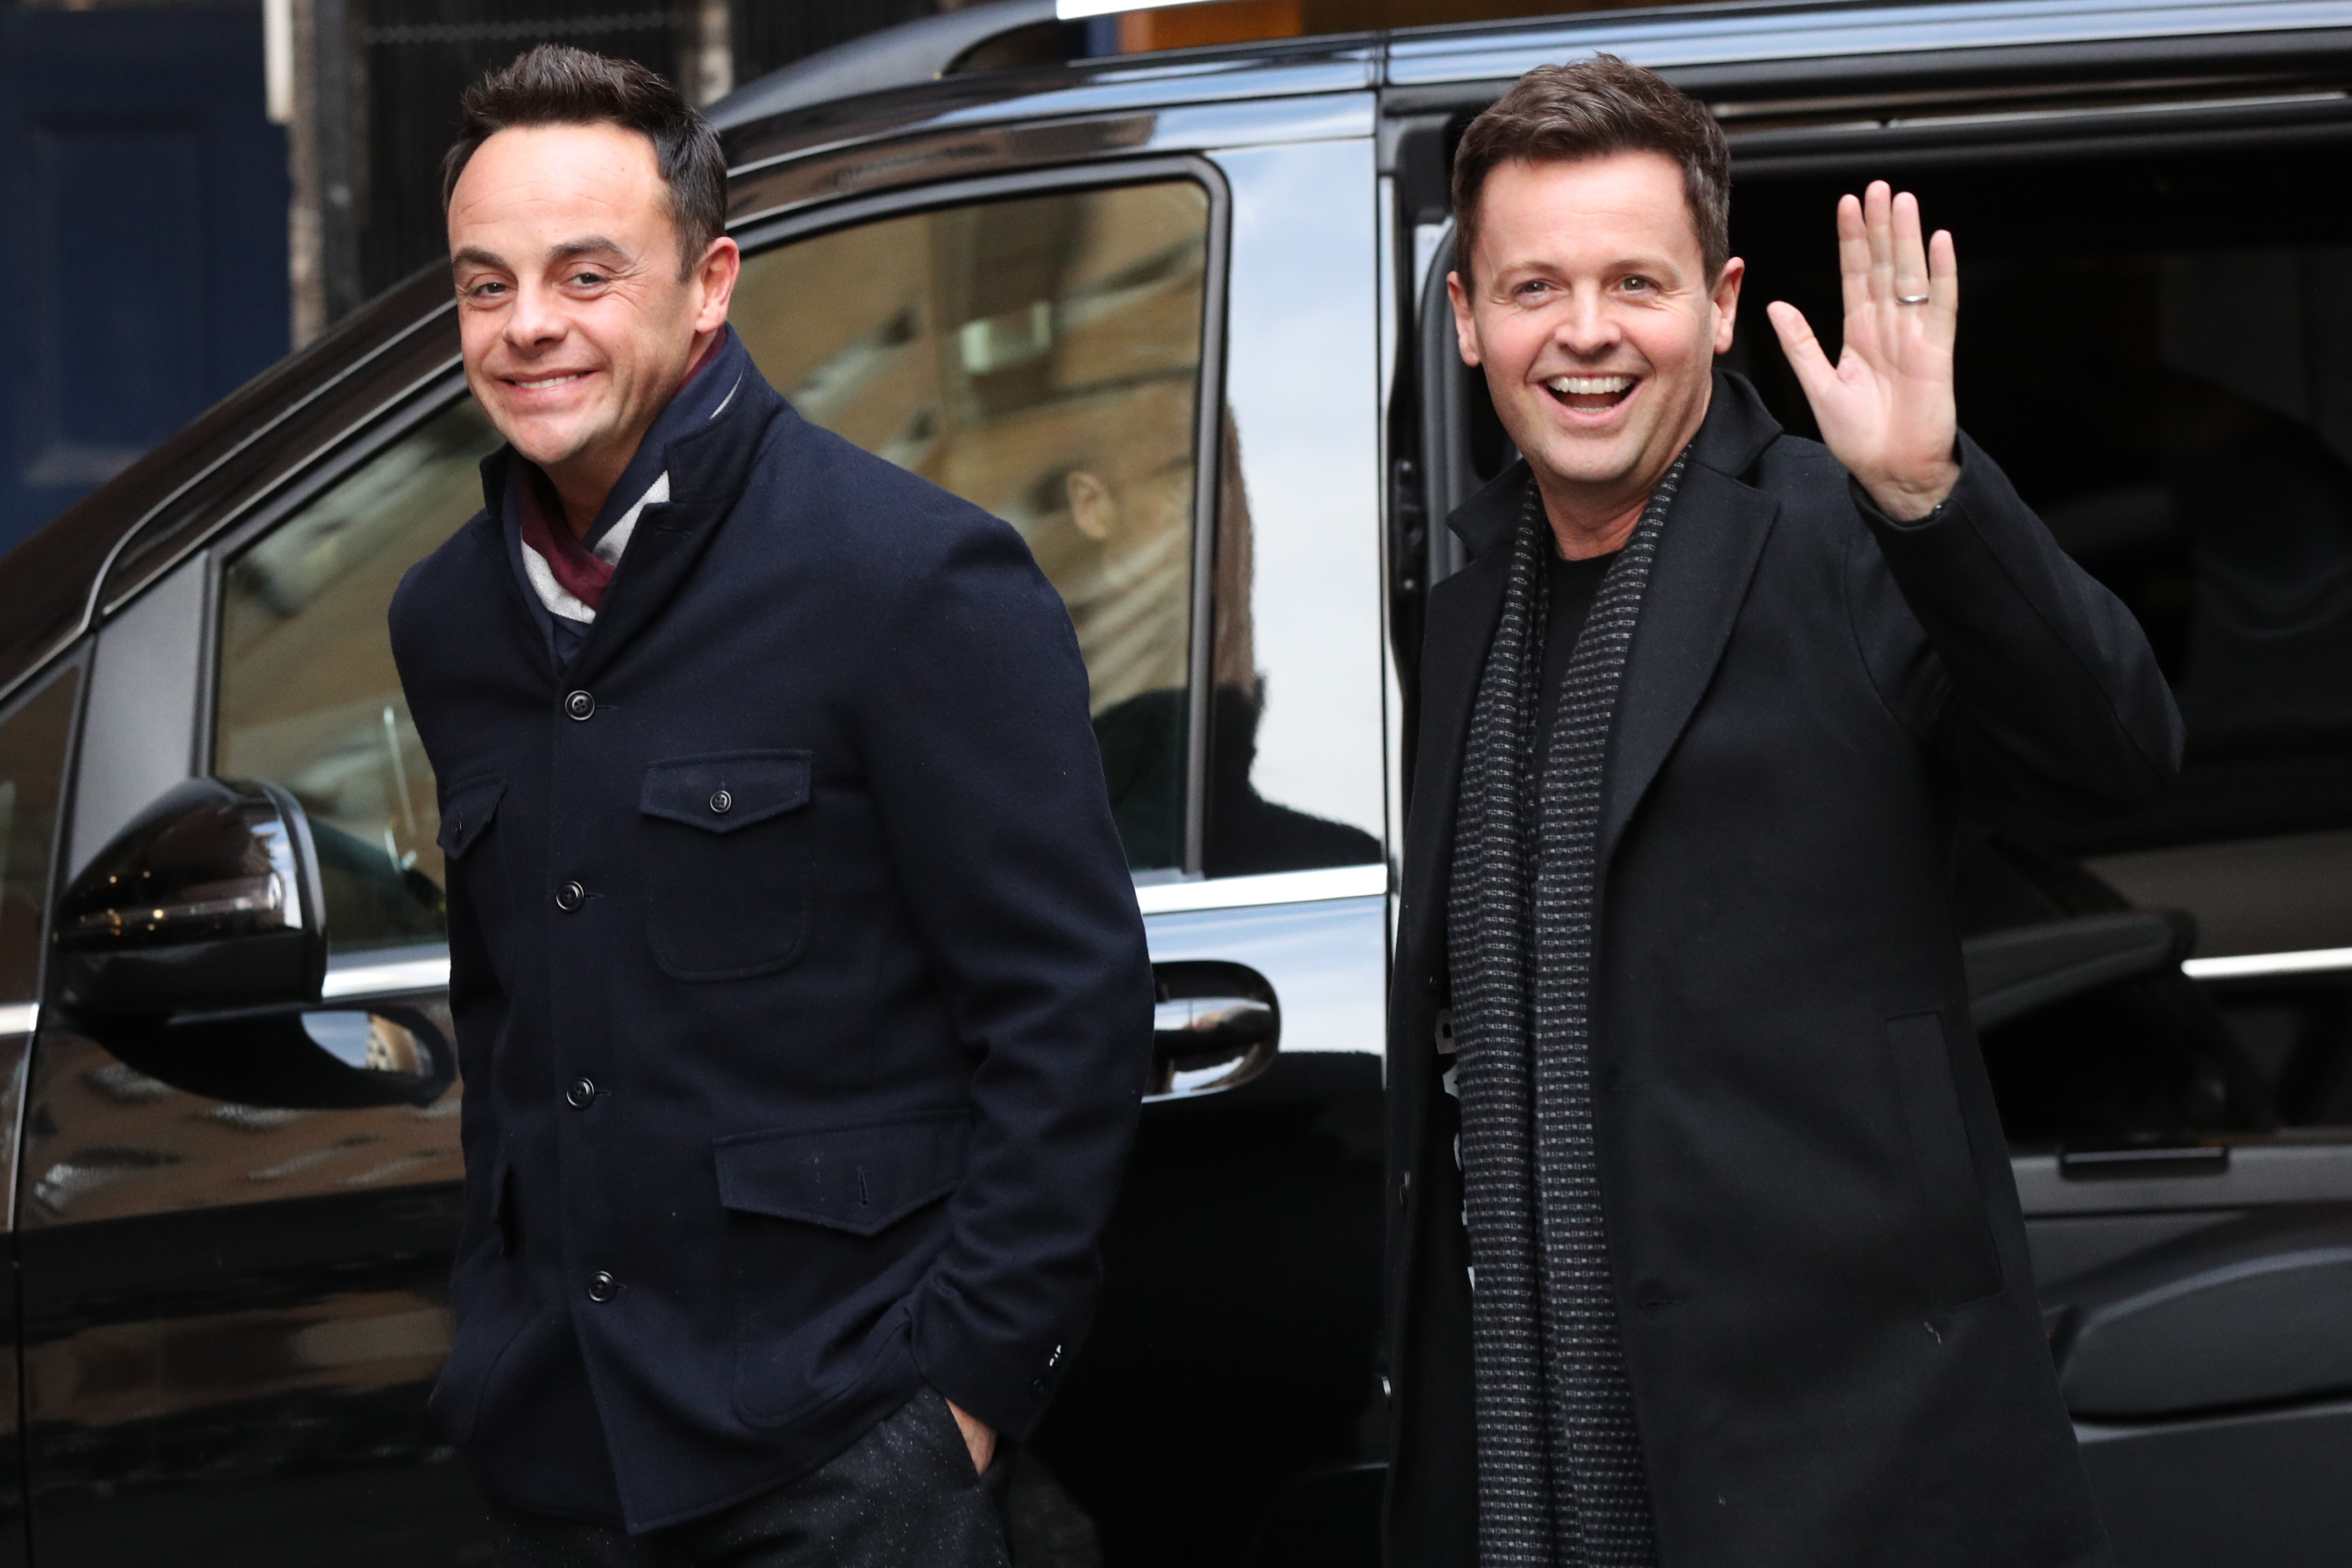 Ant McPartlin and Declan Donnelly. Credit: PA